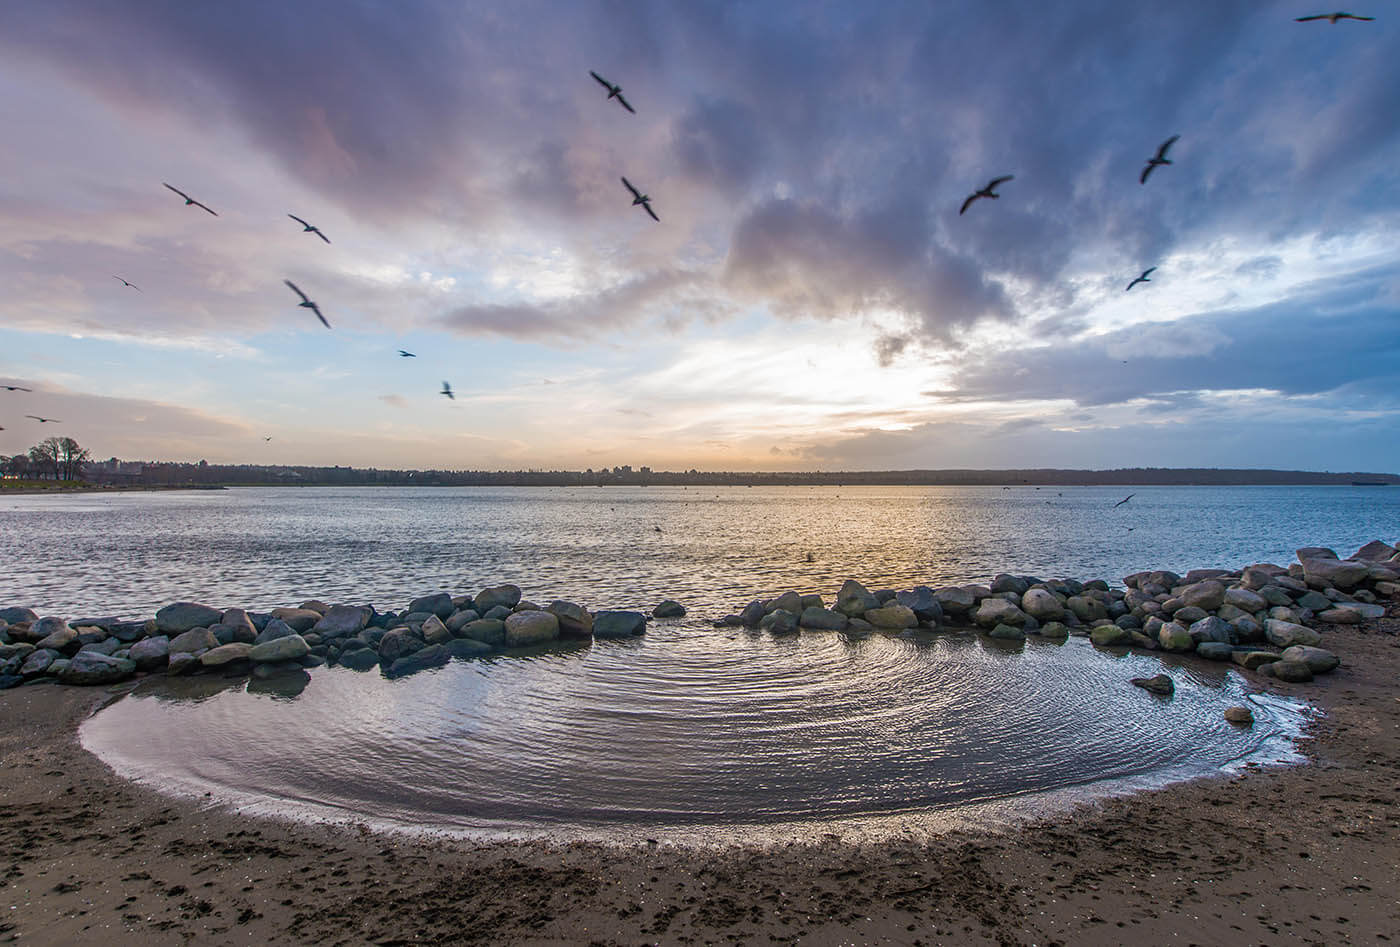 A beautiful sunset of purples and blues with birds flying over a small tide pool on a beach